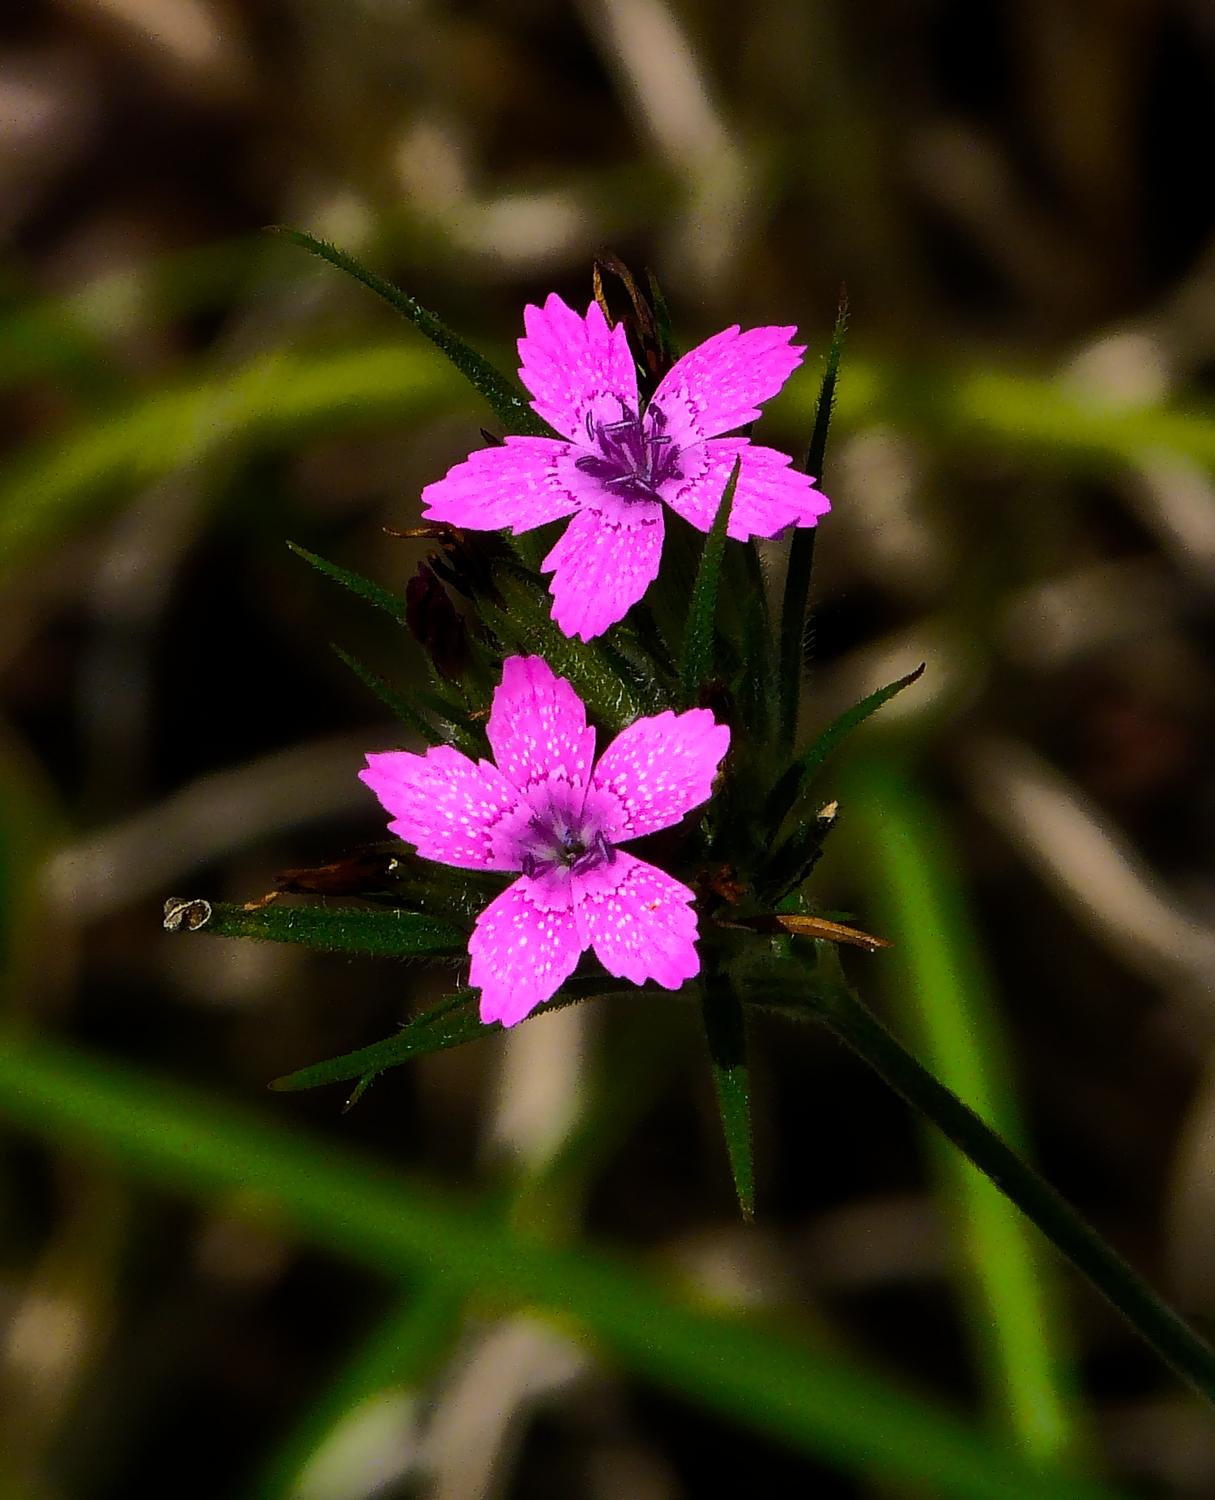 - Two little, pink flowers - Panasonic DMC-FZ18 - Tony Karp, design, art, photography, techno-impressionist, techno-impressionism, aerial photography , drone , drones , dji , mavic pro , video , 3D printing - Books -